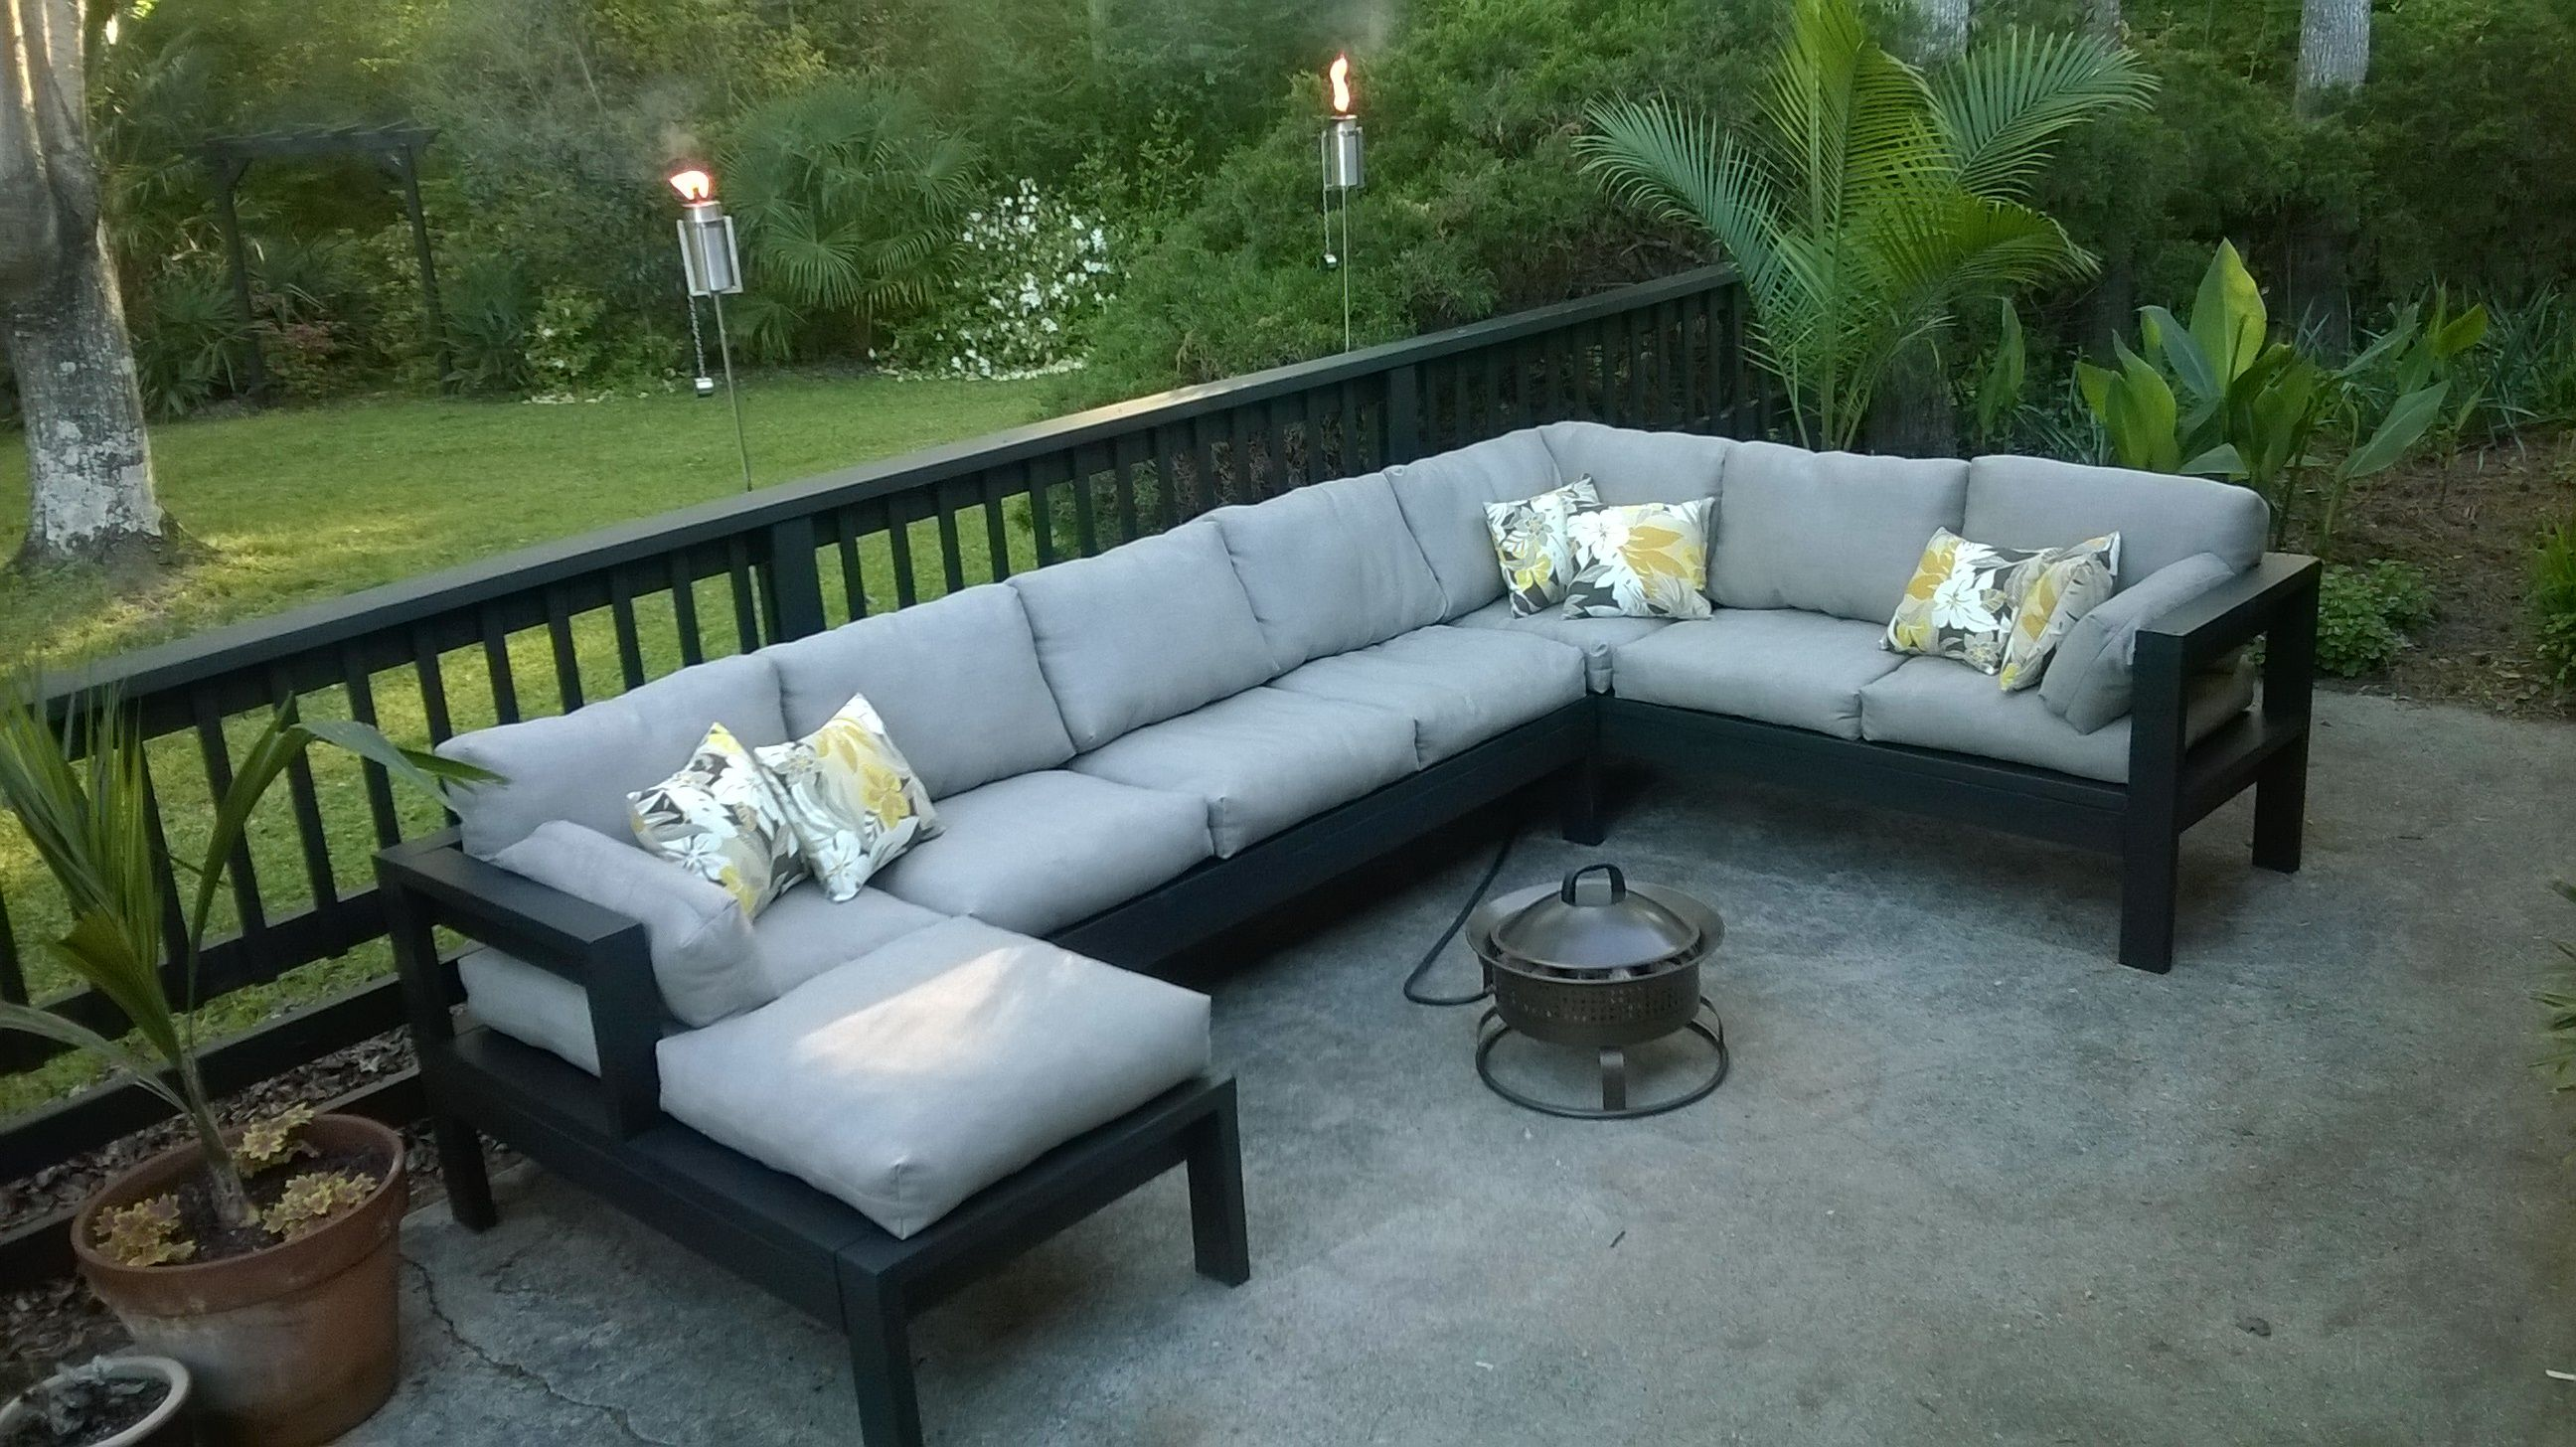 Outdoor Couch Outdoor Sectional Do It Yourself Home Projects From Ana